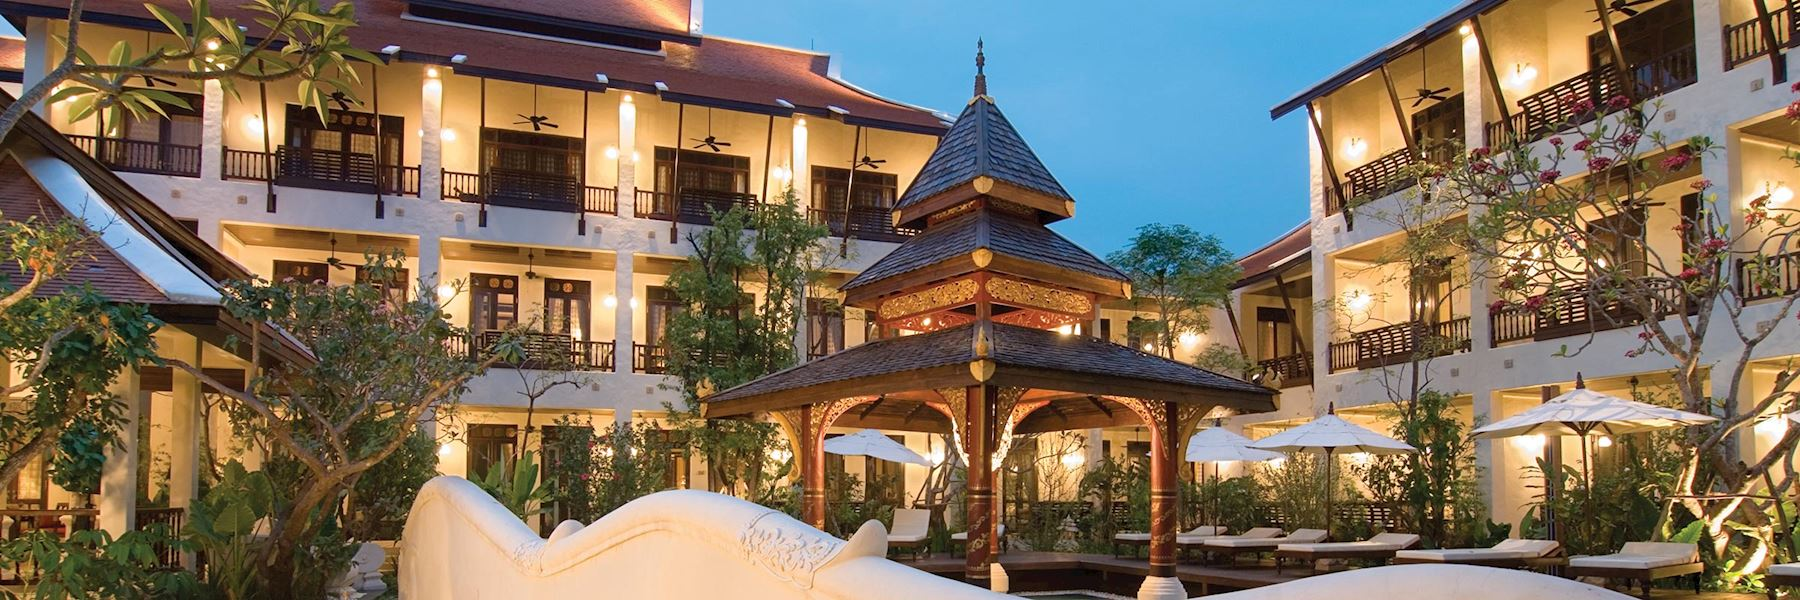 Puripunn boutique hotel hotels in chiang mai audley travel for Best design boutique hotels thailand